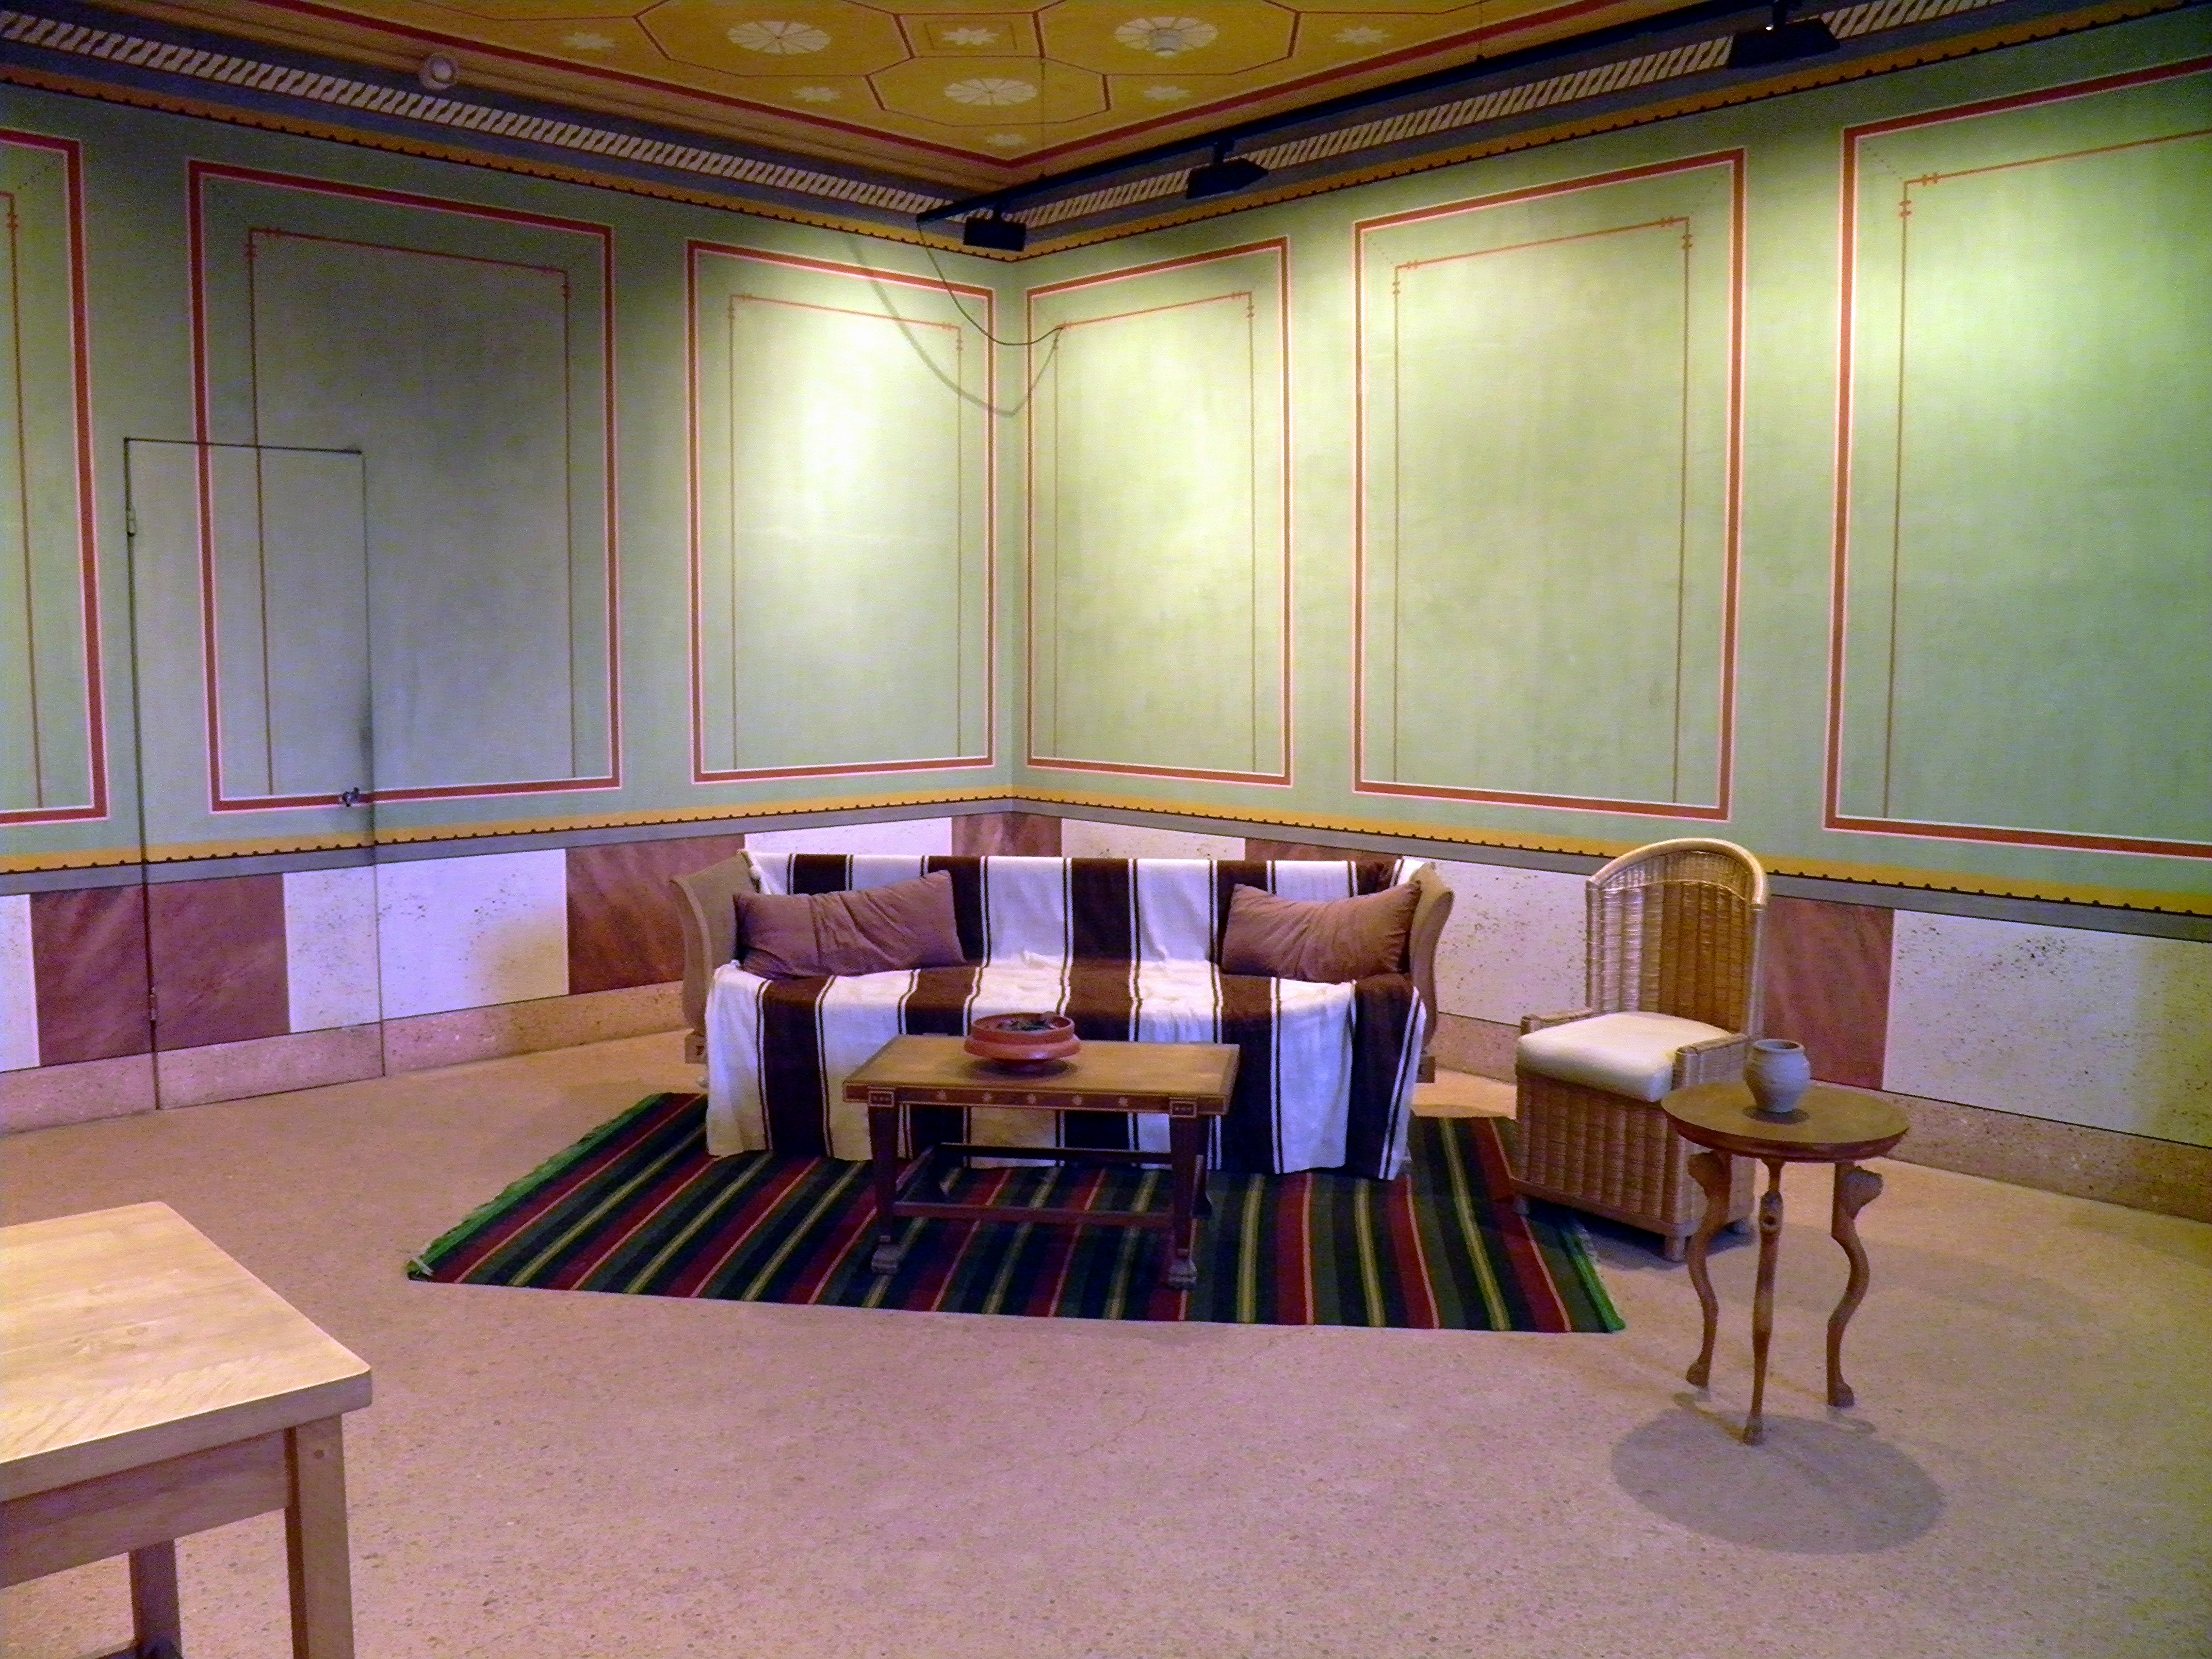 File:Reconstructed Roman furniture and mural painting in of the ...